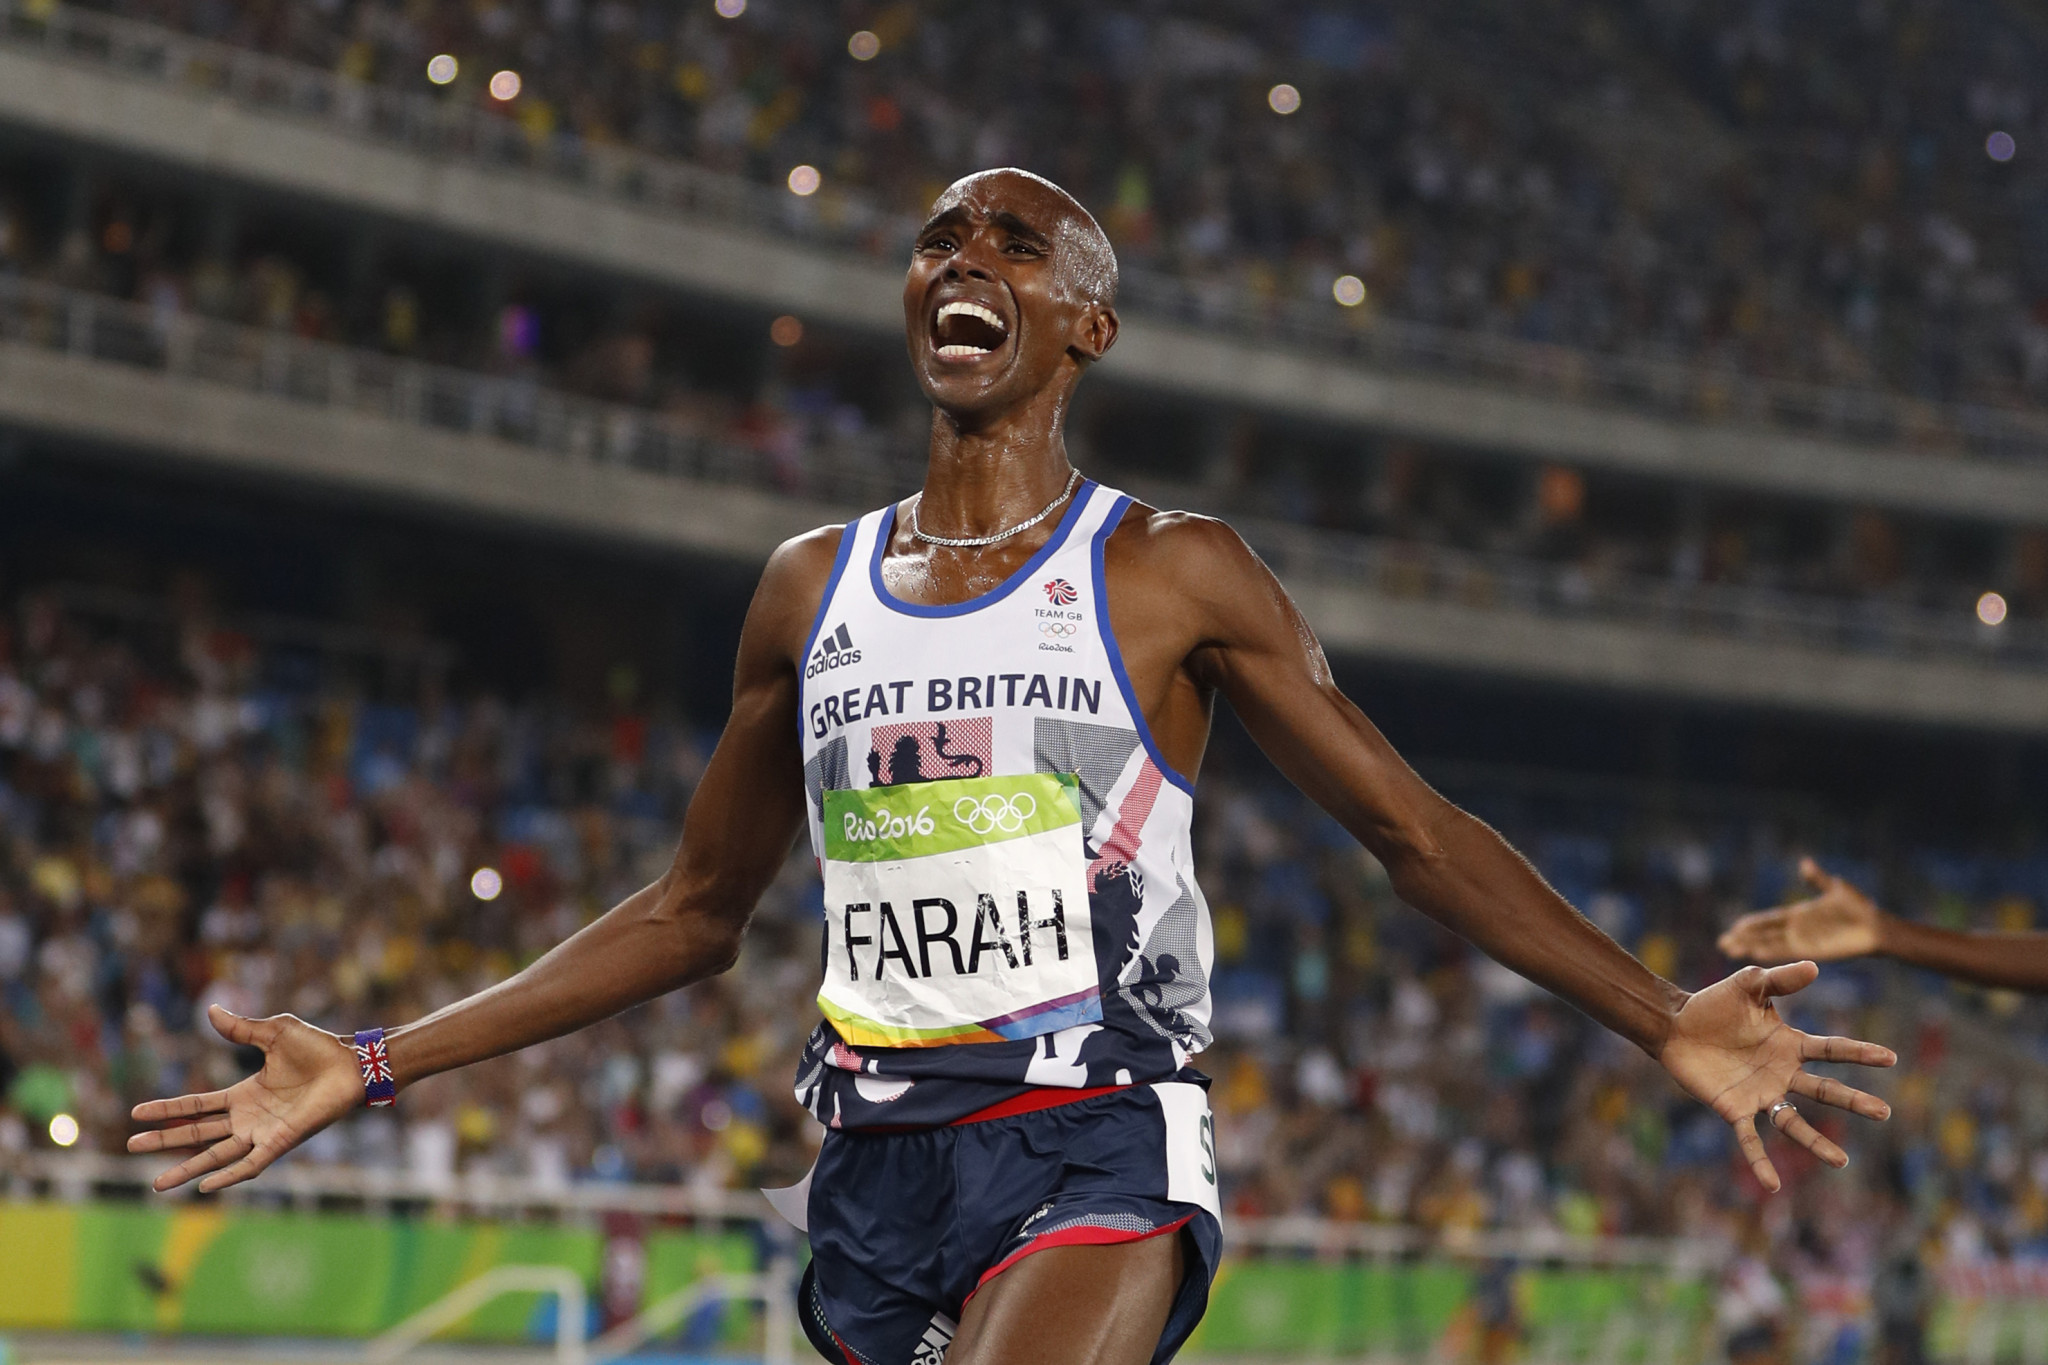 Sir Mo Farah became a four-time Olympic champion with Alberto Salazar as coach ©Getty Images